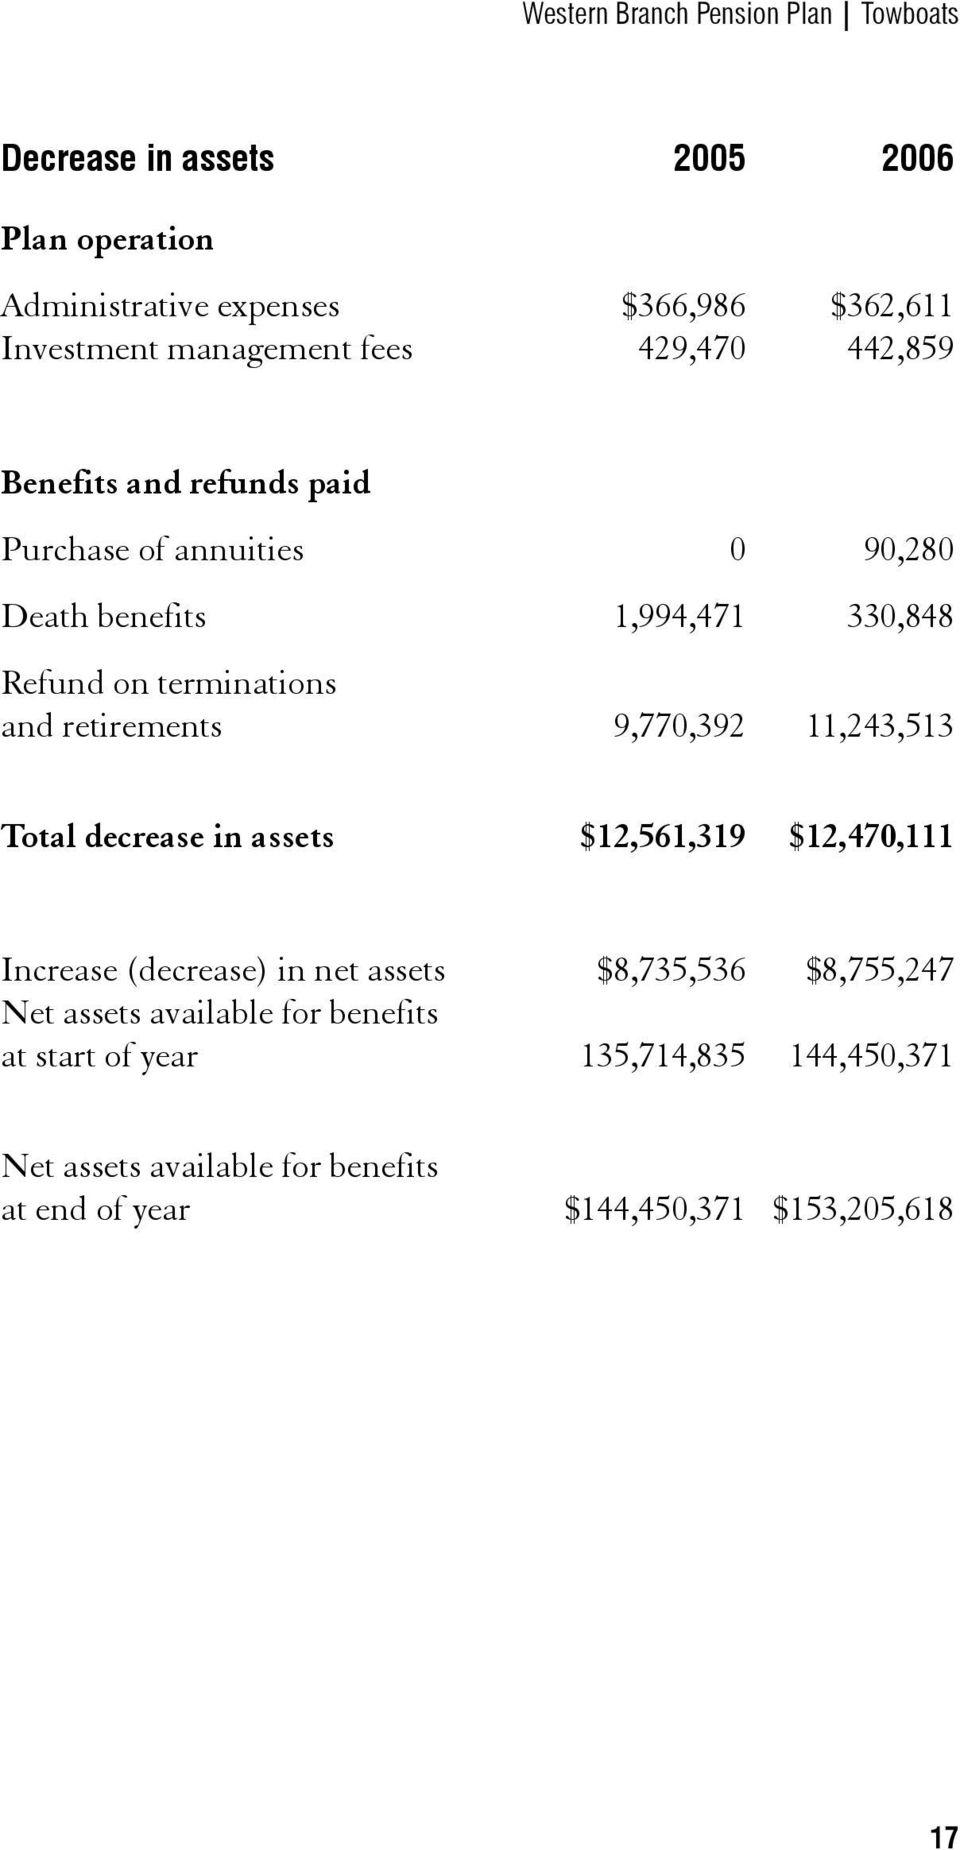 terminations and retirements 9,770,392 11,243,513 Total decrease in assets $12,561,319 $12,470,111 Increase (decrease) in net assets $8,735,536